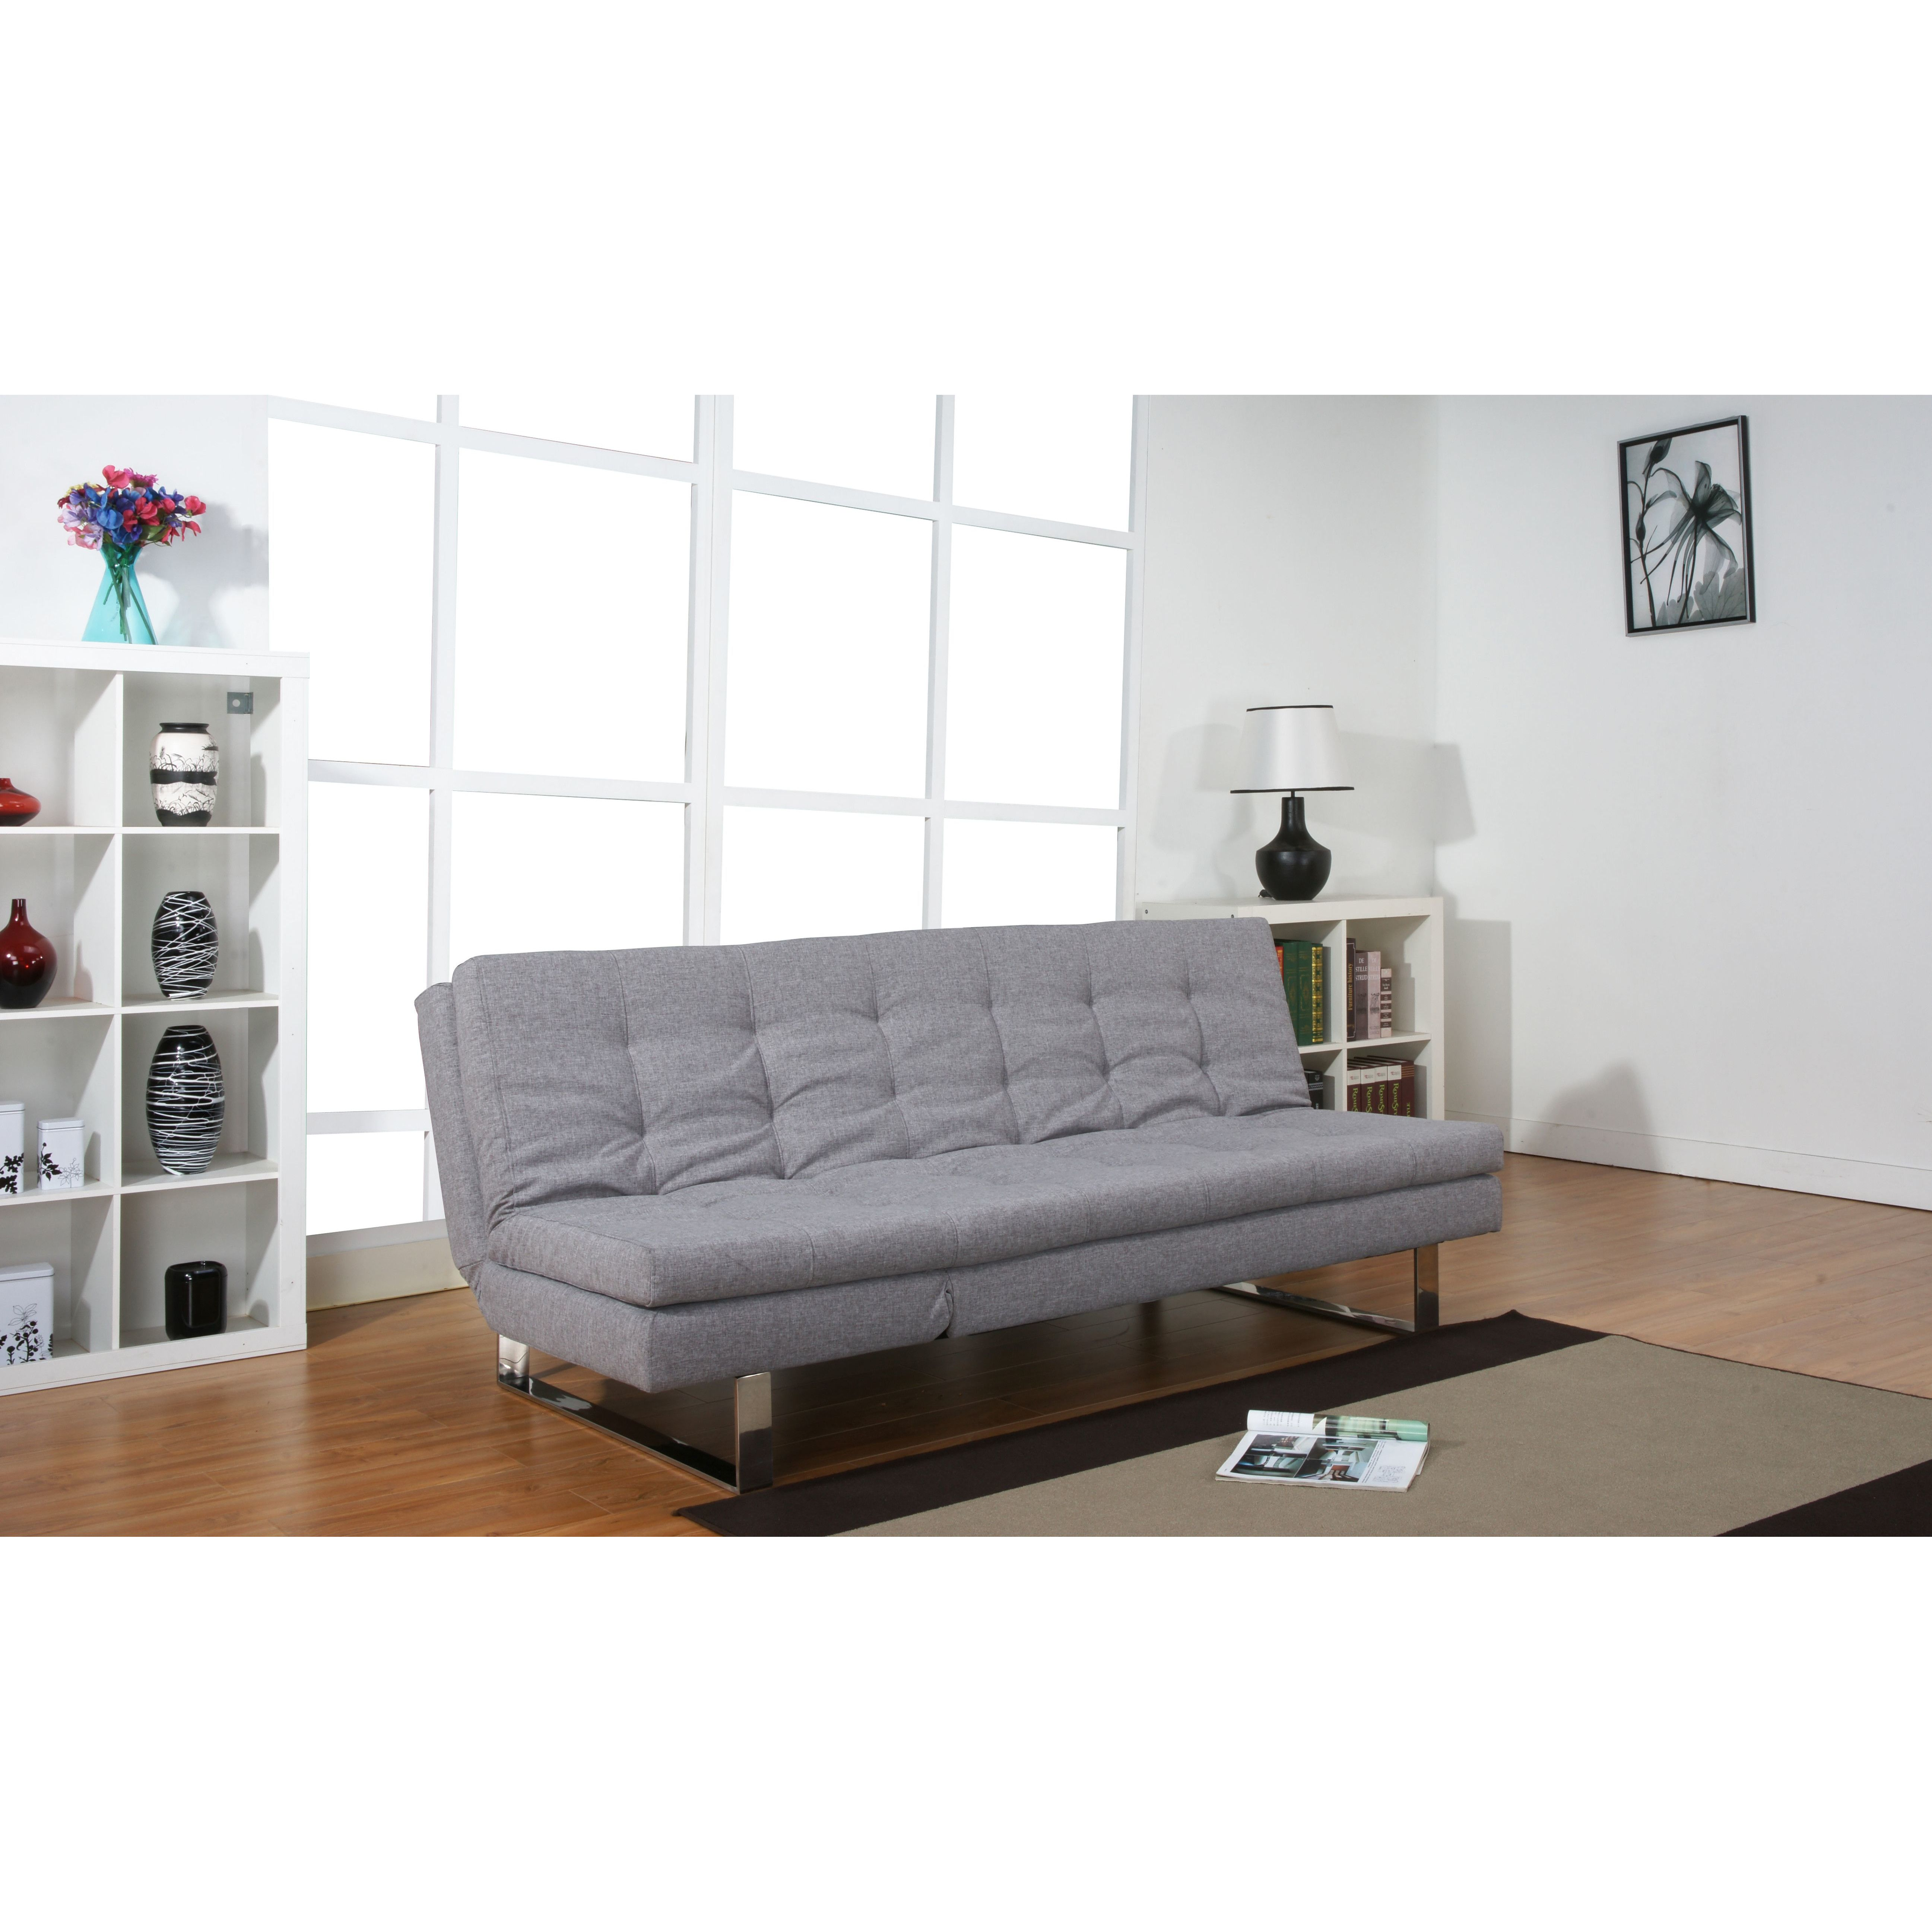 Wondrous Swanscombe 3 Seater Sofa Bed Sofa Cama 3 Seater Sofa Bed Andrewgaddart Wooden Chair Designs For Living Room Andrewgaddartcom